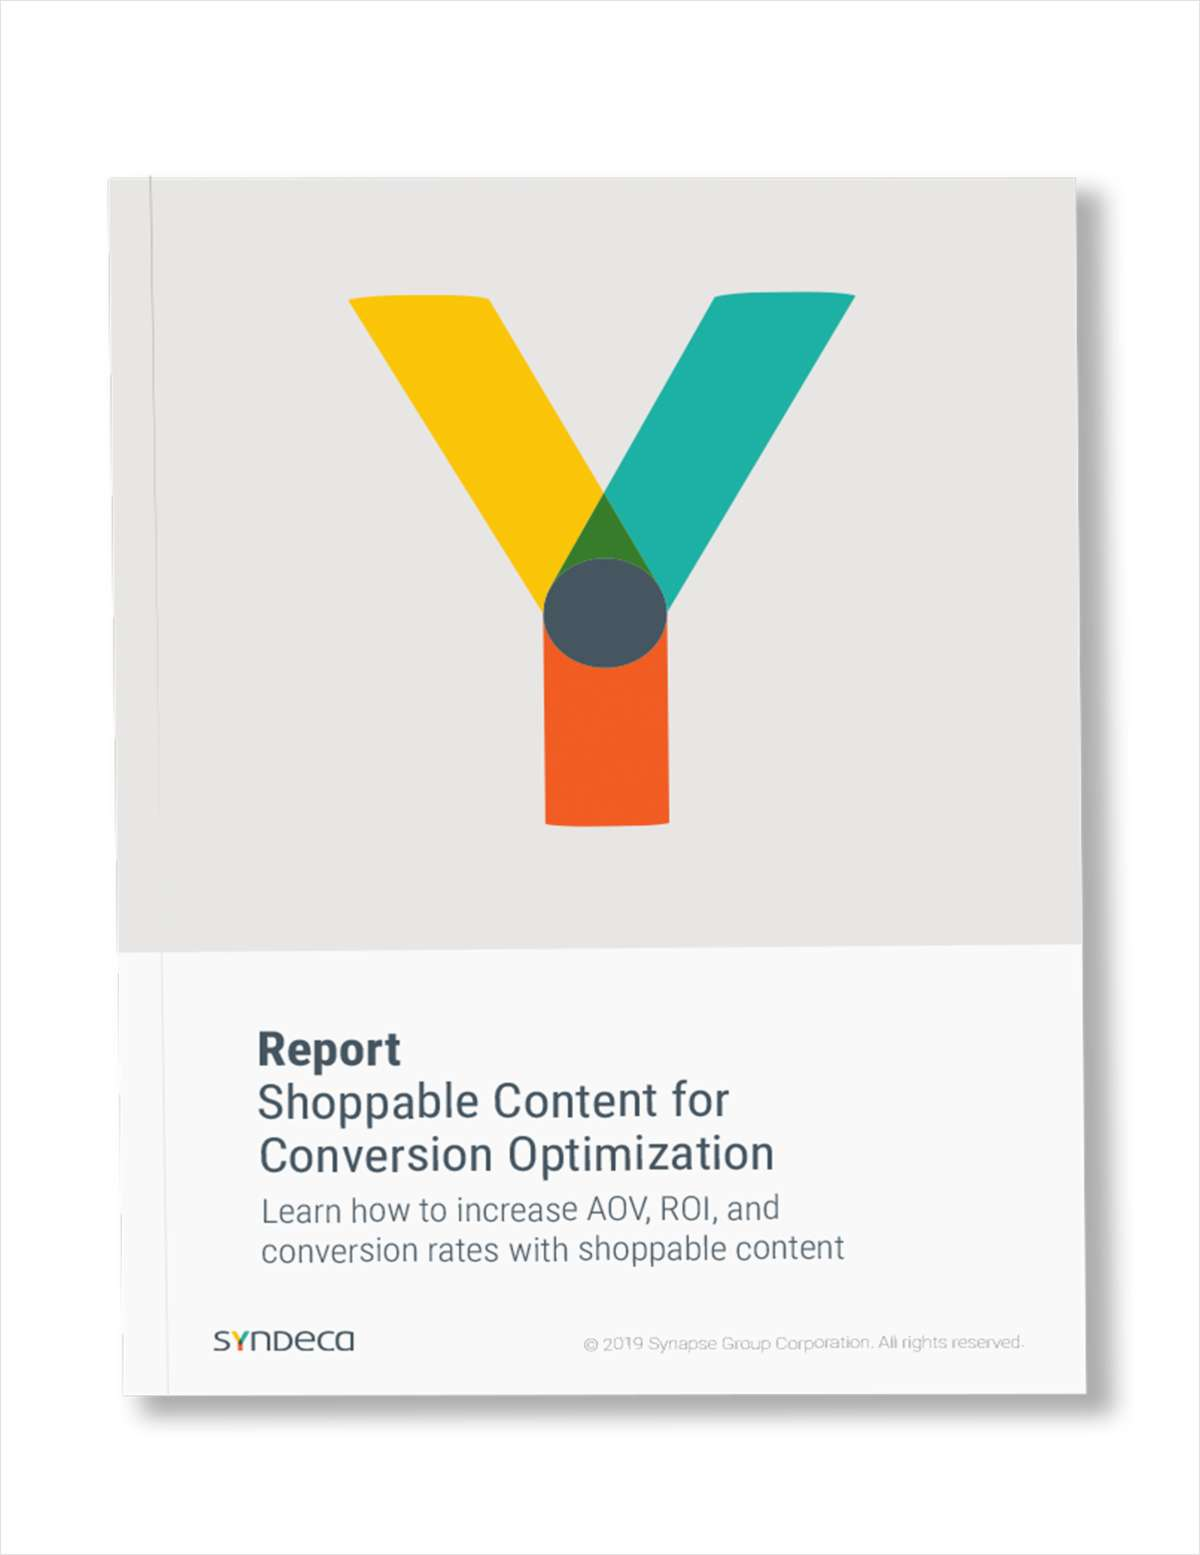 Report: Conversion Optimization with Shoppable Content